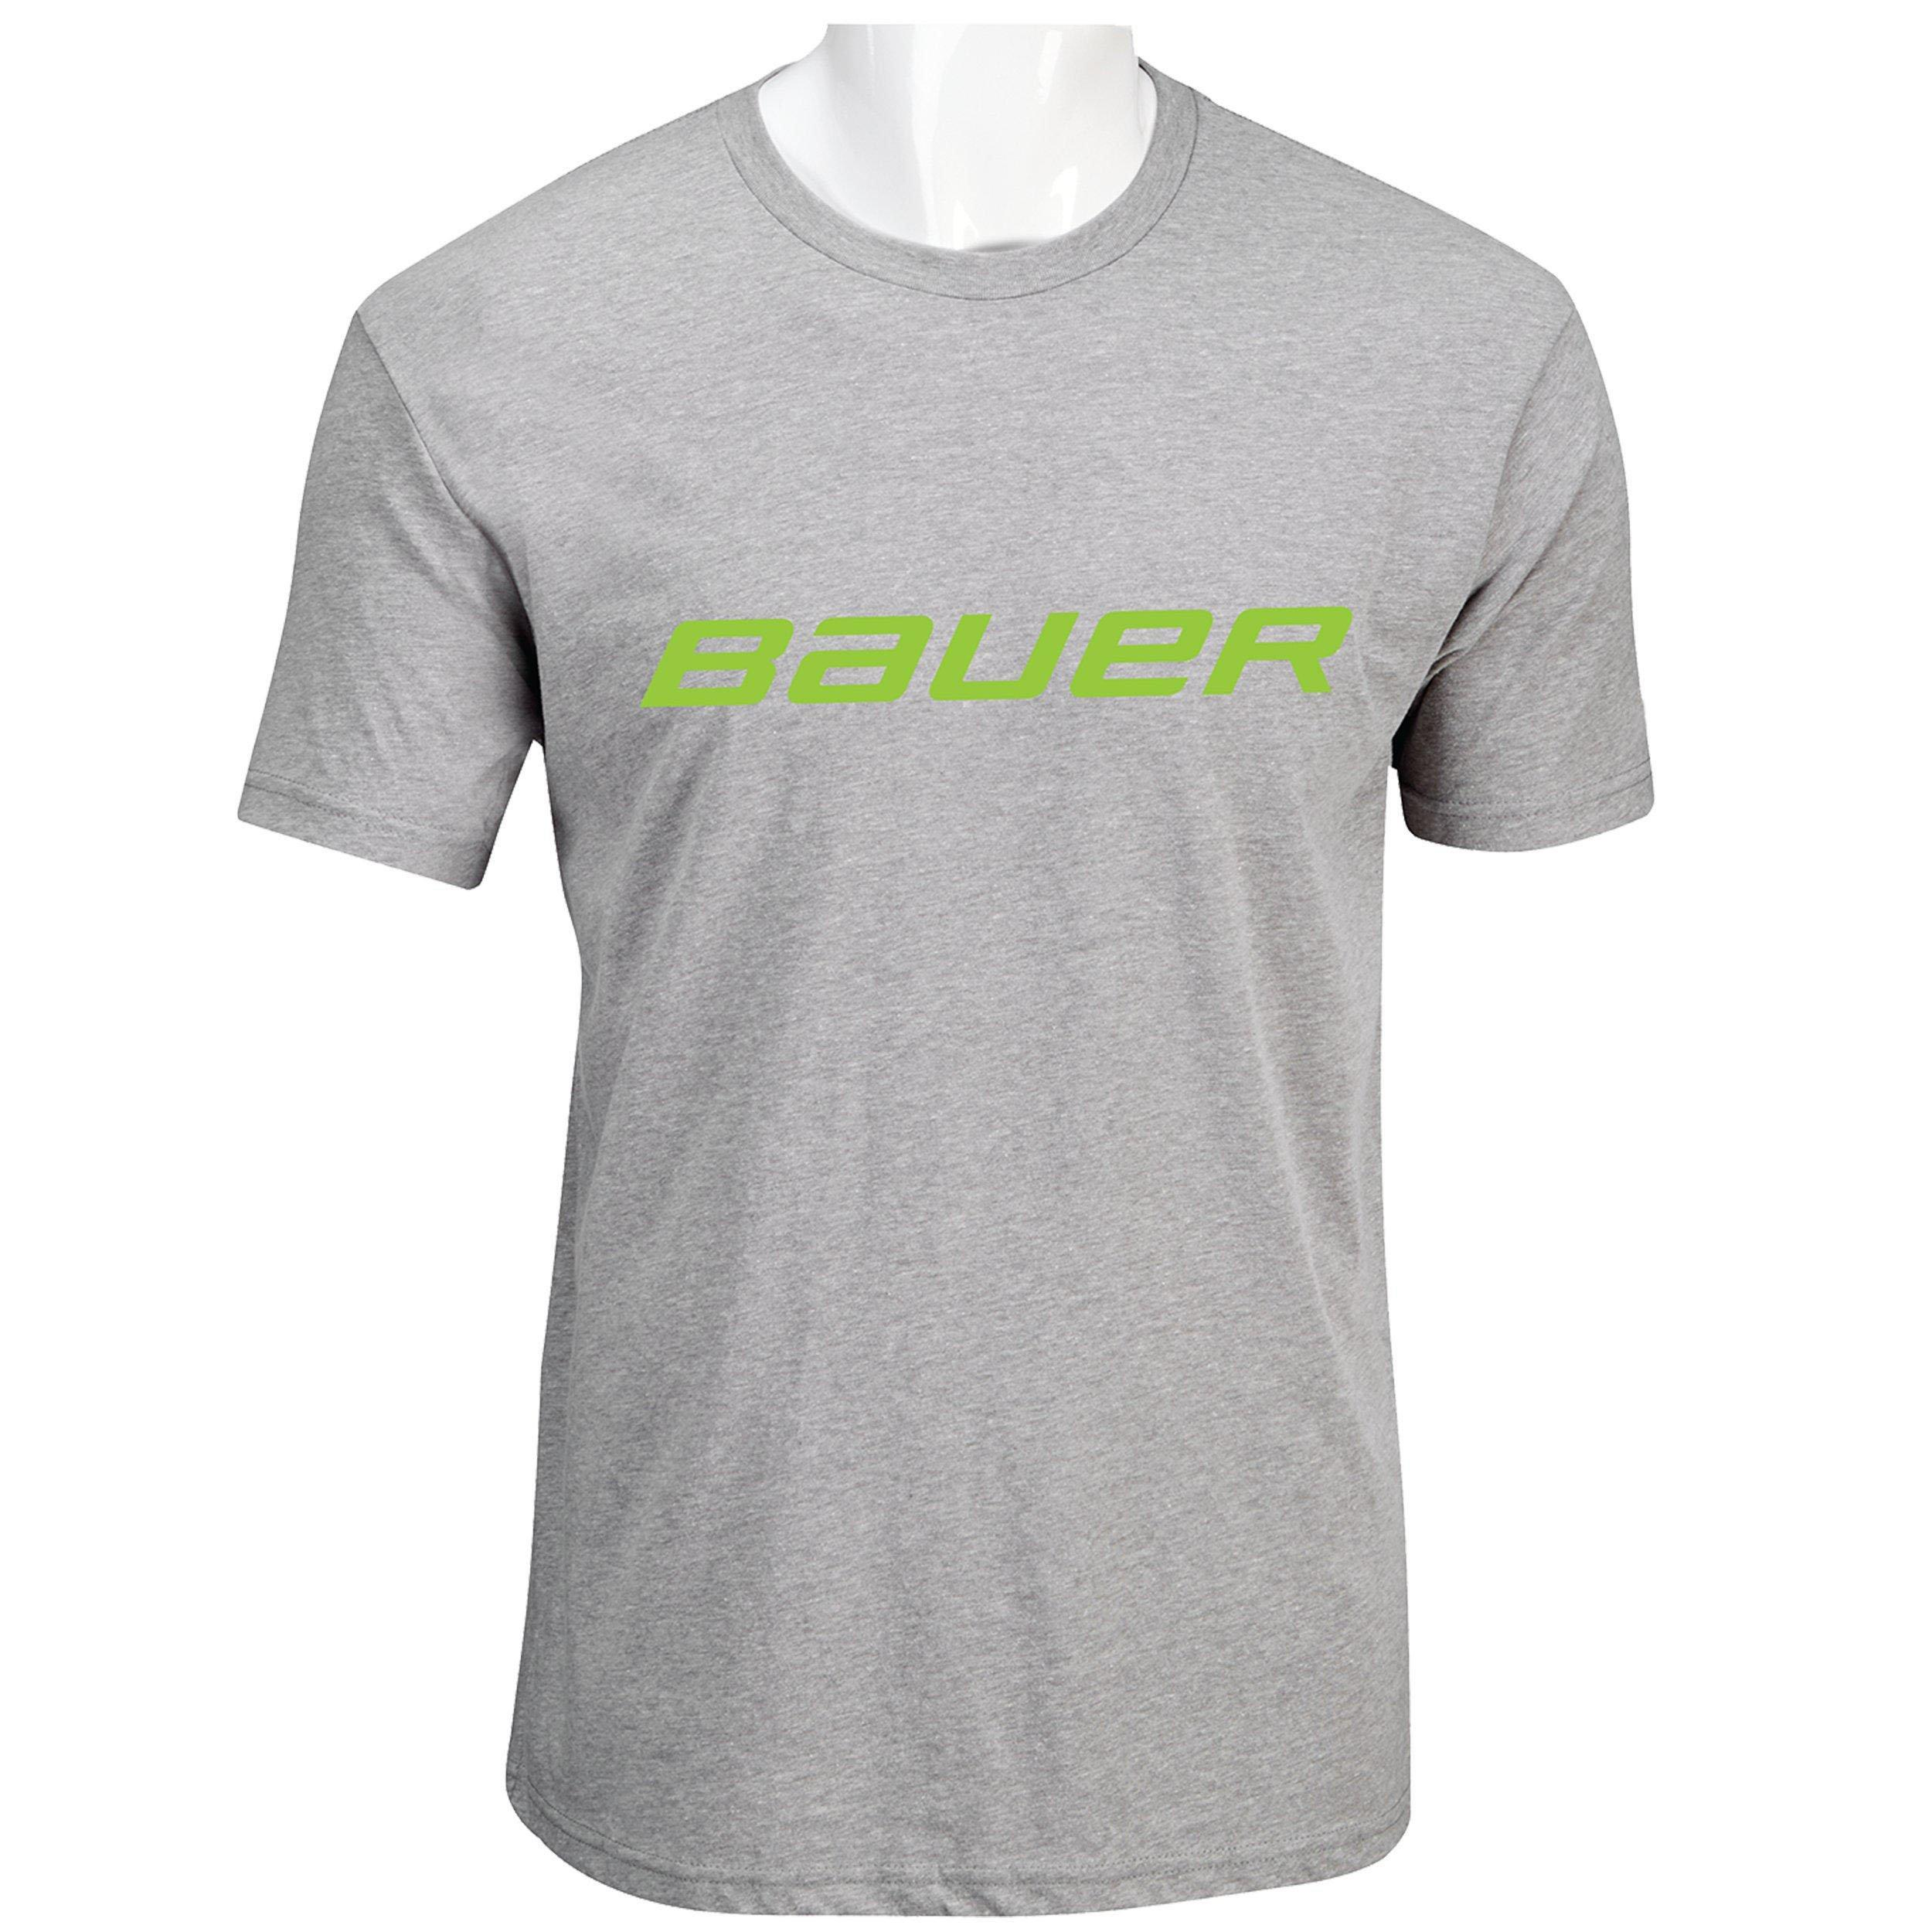 BAUER Core Short Sleeve Tee Color Pop Youth - Lime,,Размер M